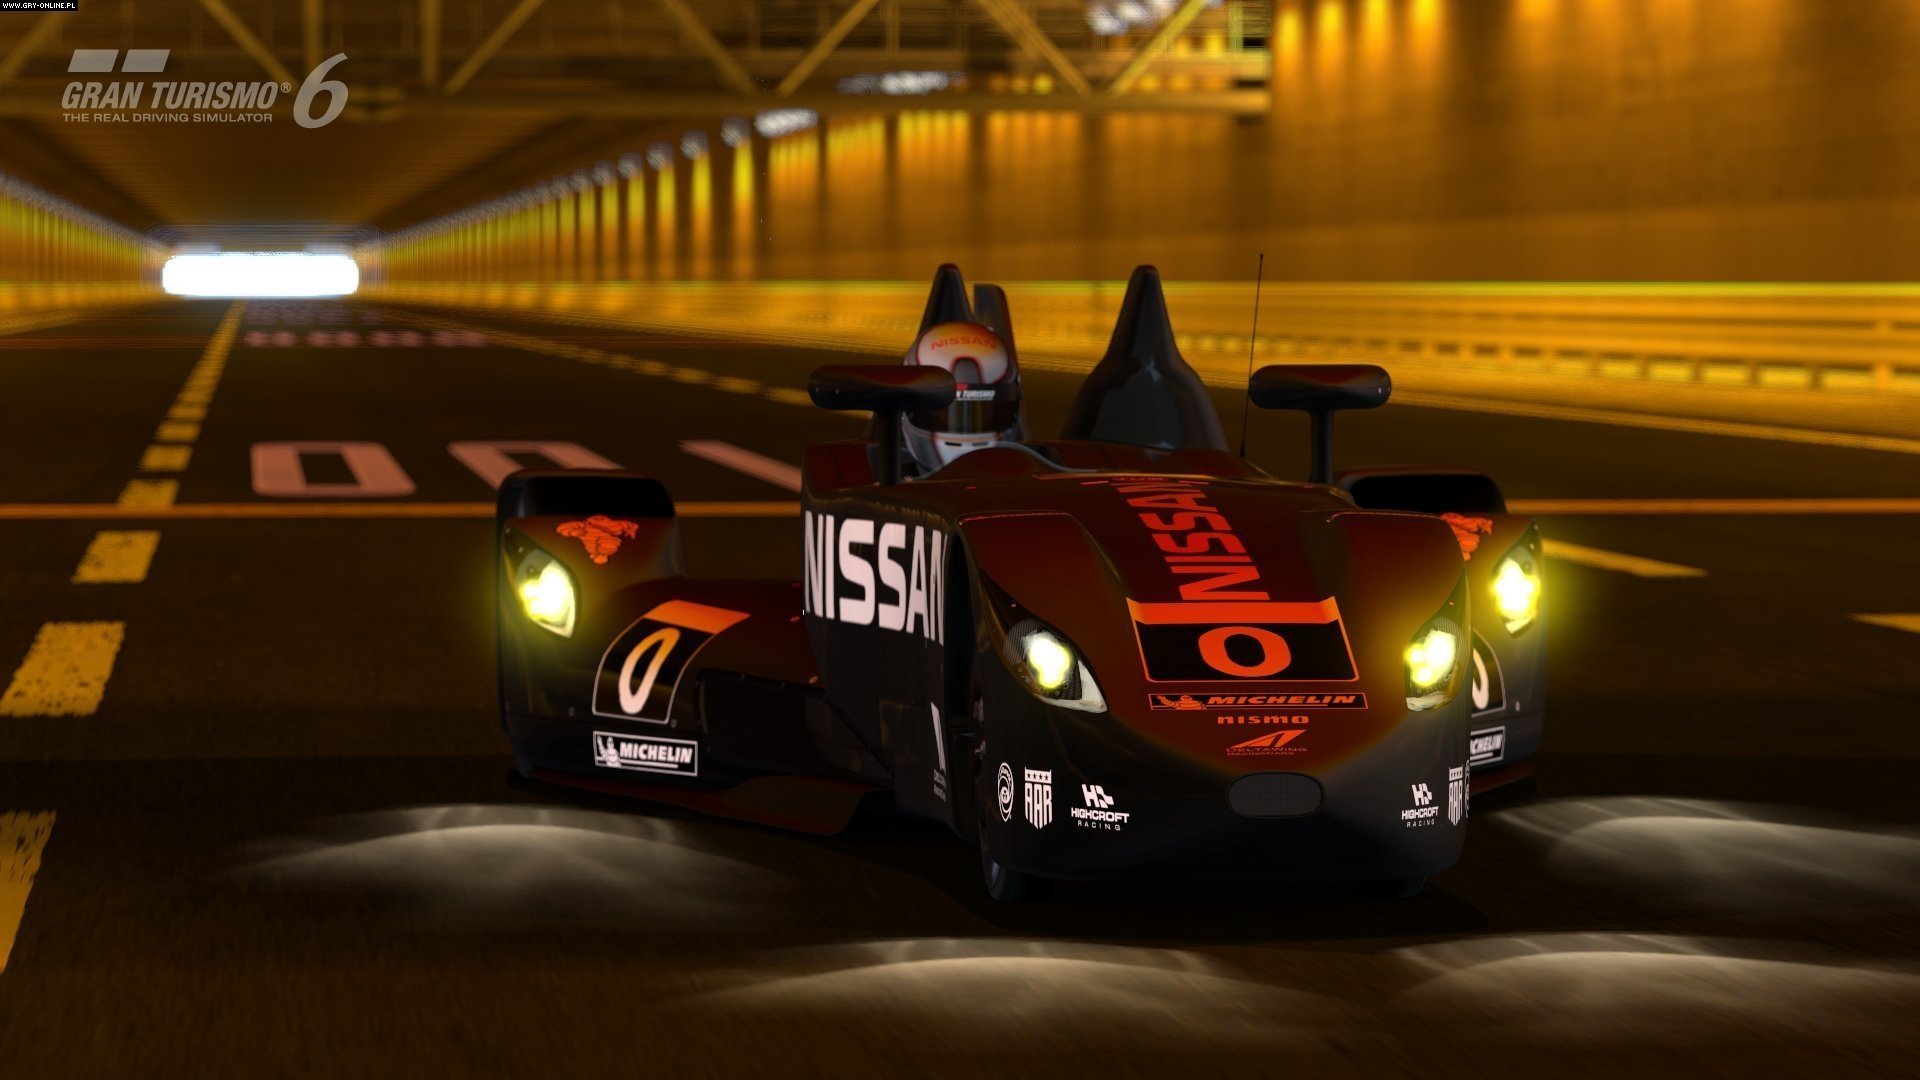 322 gran turismo 6 hd wallpapers background images wallpaper abyss hd wallpaper background image id451861 1920x1080 video game gran turismo 6 publicscrutiny Image collections